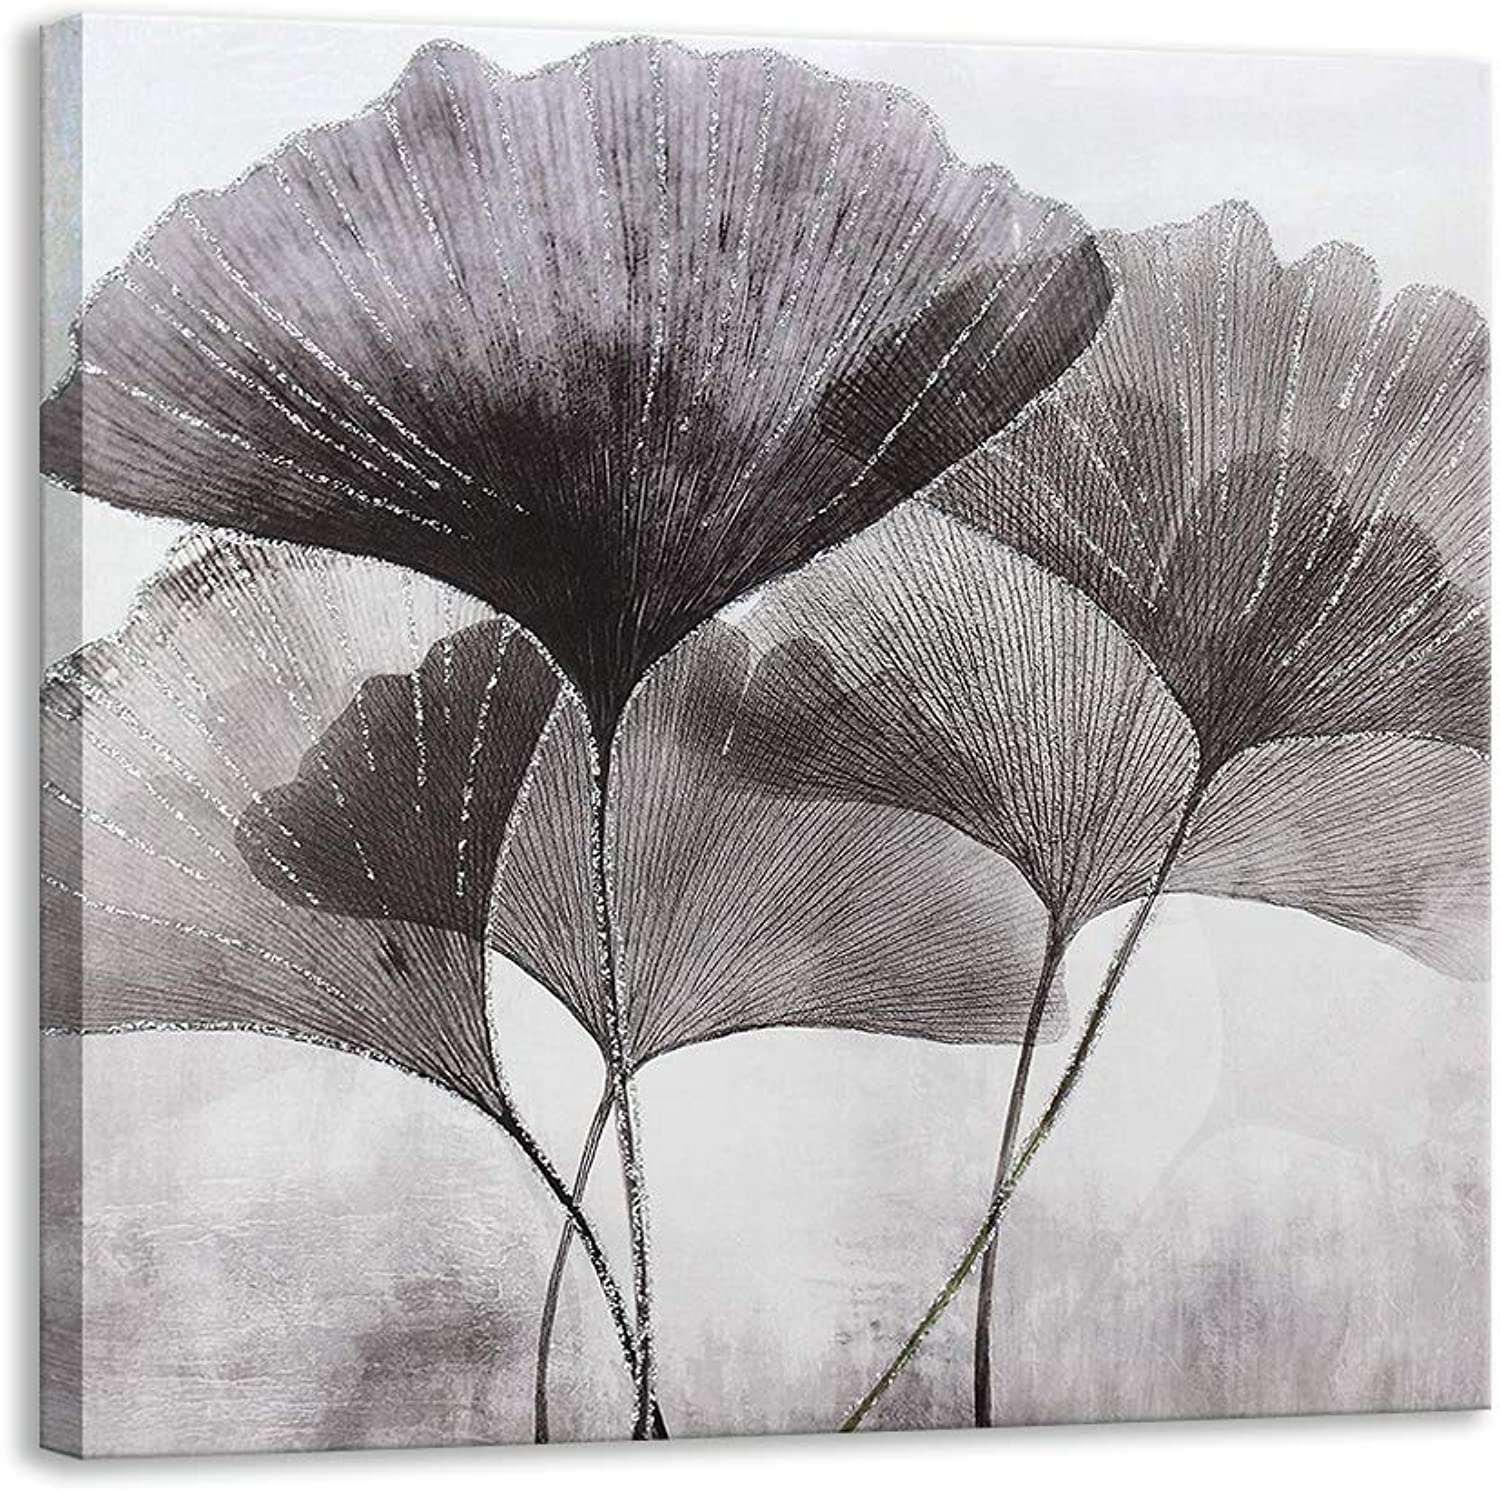 Kas Home Ginkgo Leaves Plant Canvas Wall Art   Silver Glitter Crystals Prints Large Framed   Perfect Nature Artwork Decoration for Living Room, Office & Home Wall Decor (24 X 24 inch, B Framed)